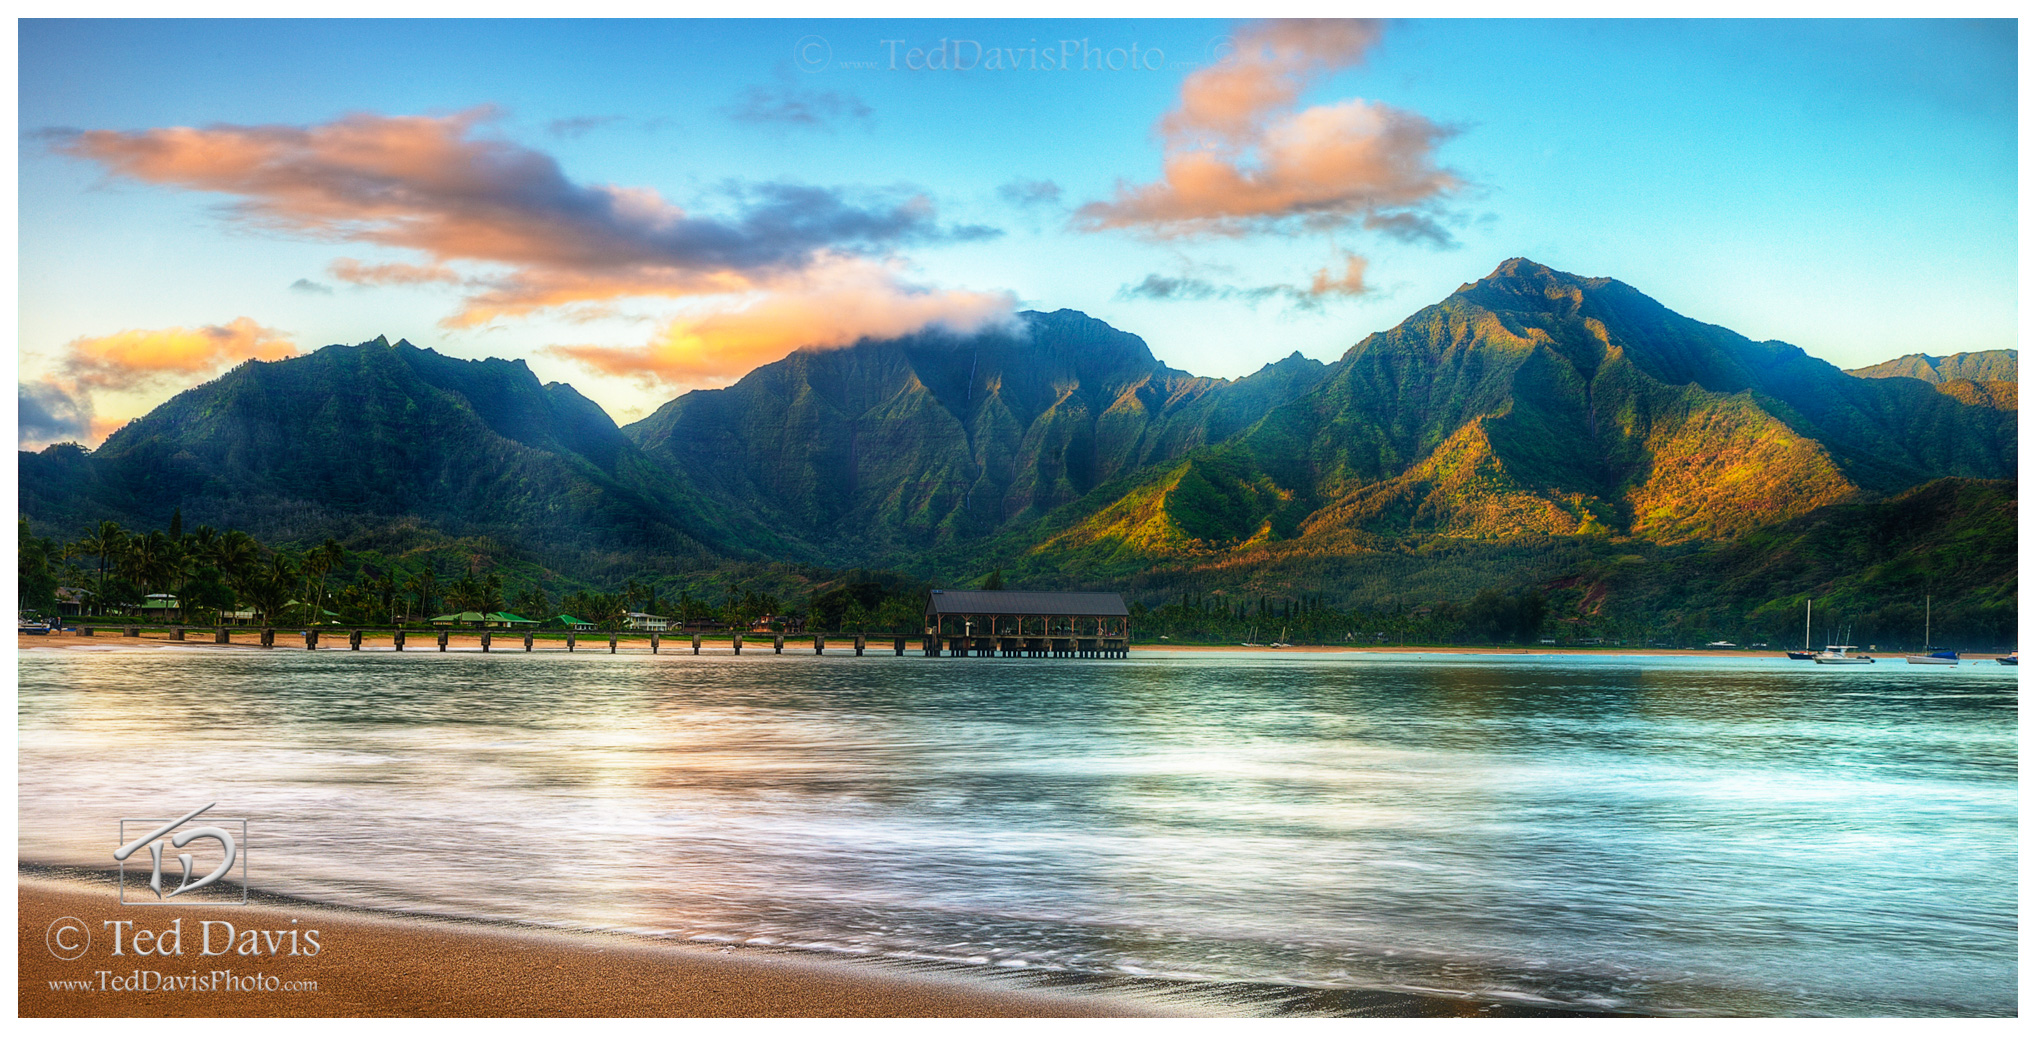 hanalei, rising sun, pier, landscape, sunrise, kaua'i, waves, tide, mountains, clouds, valley, reflecting, morning, photo